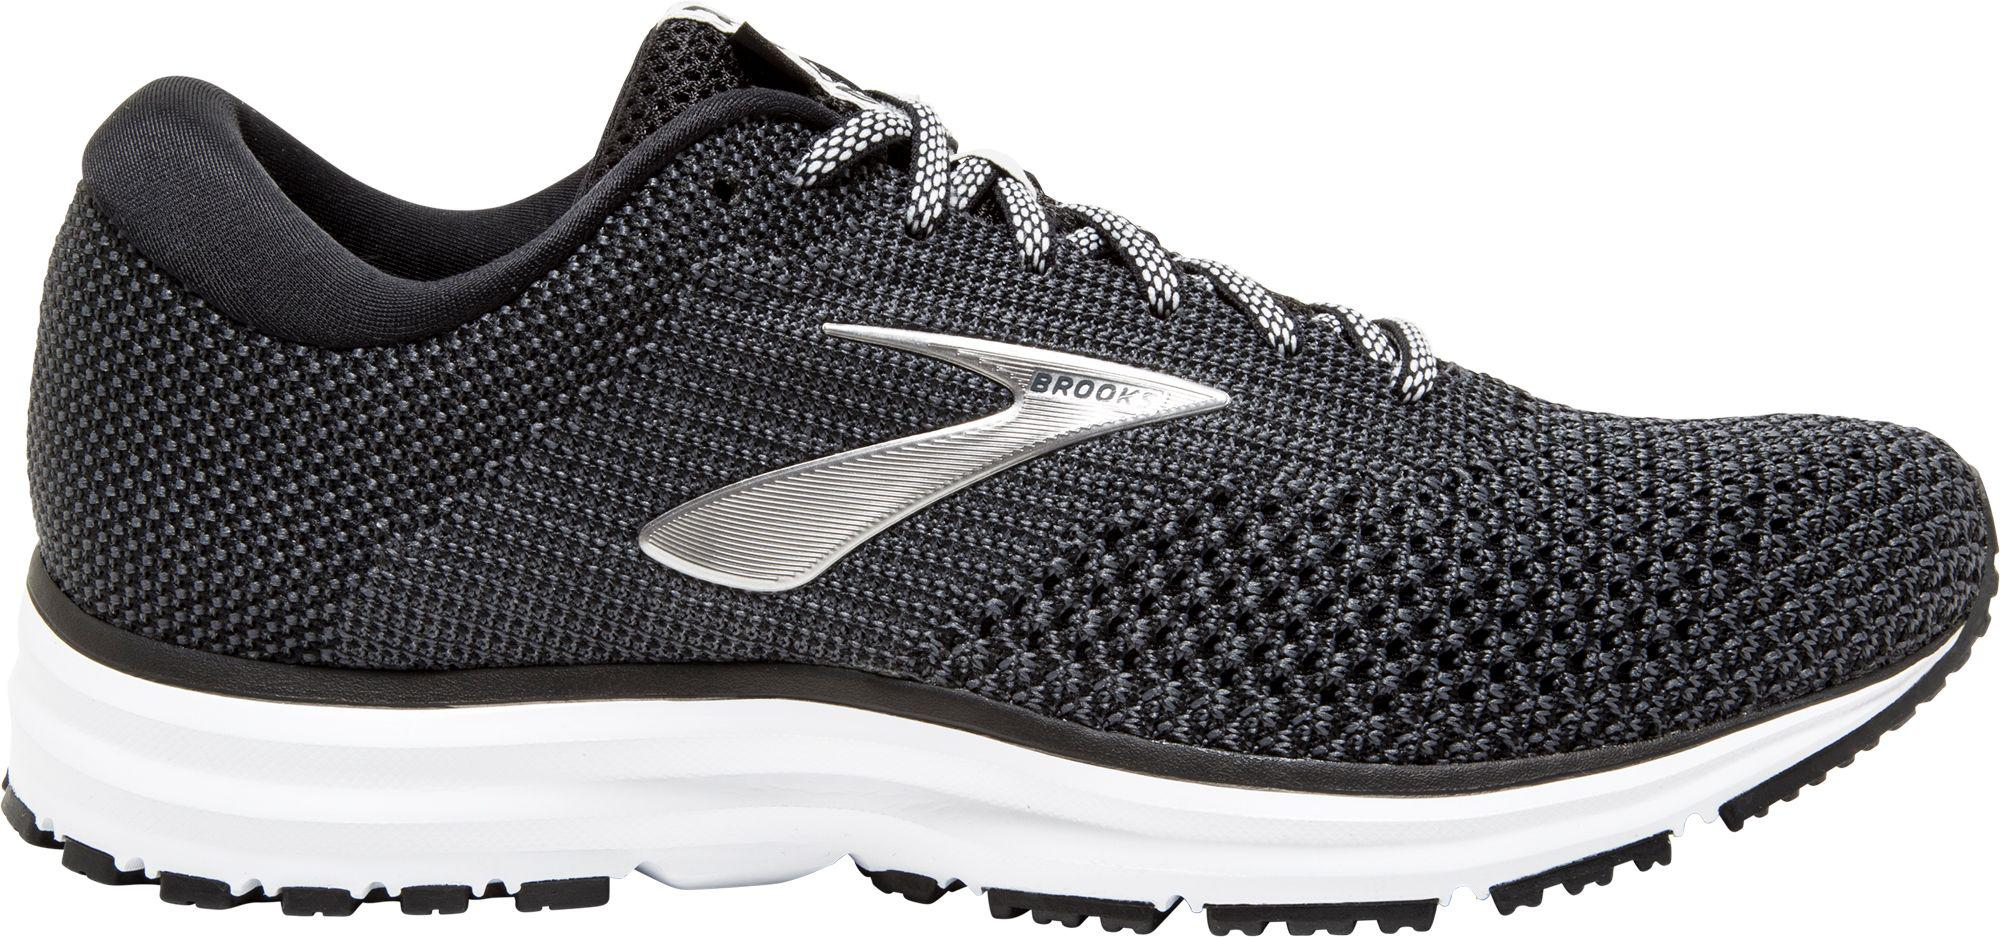 dc04663ca65 ... Brooks - Black Revel 2 Running Shoes - Lyst ...